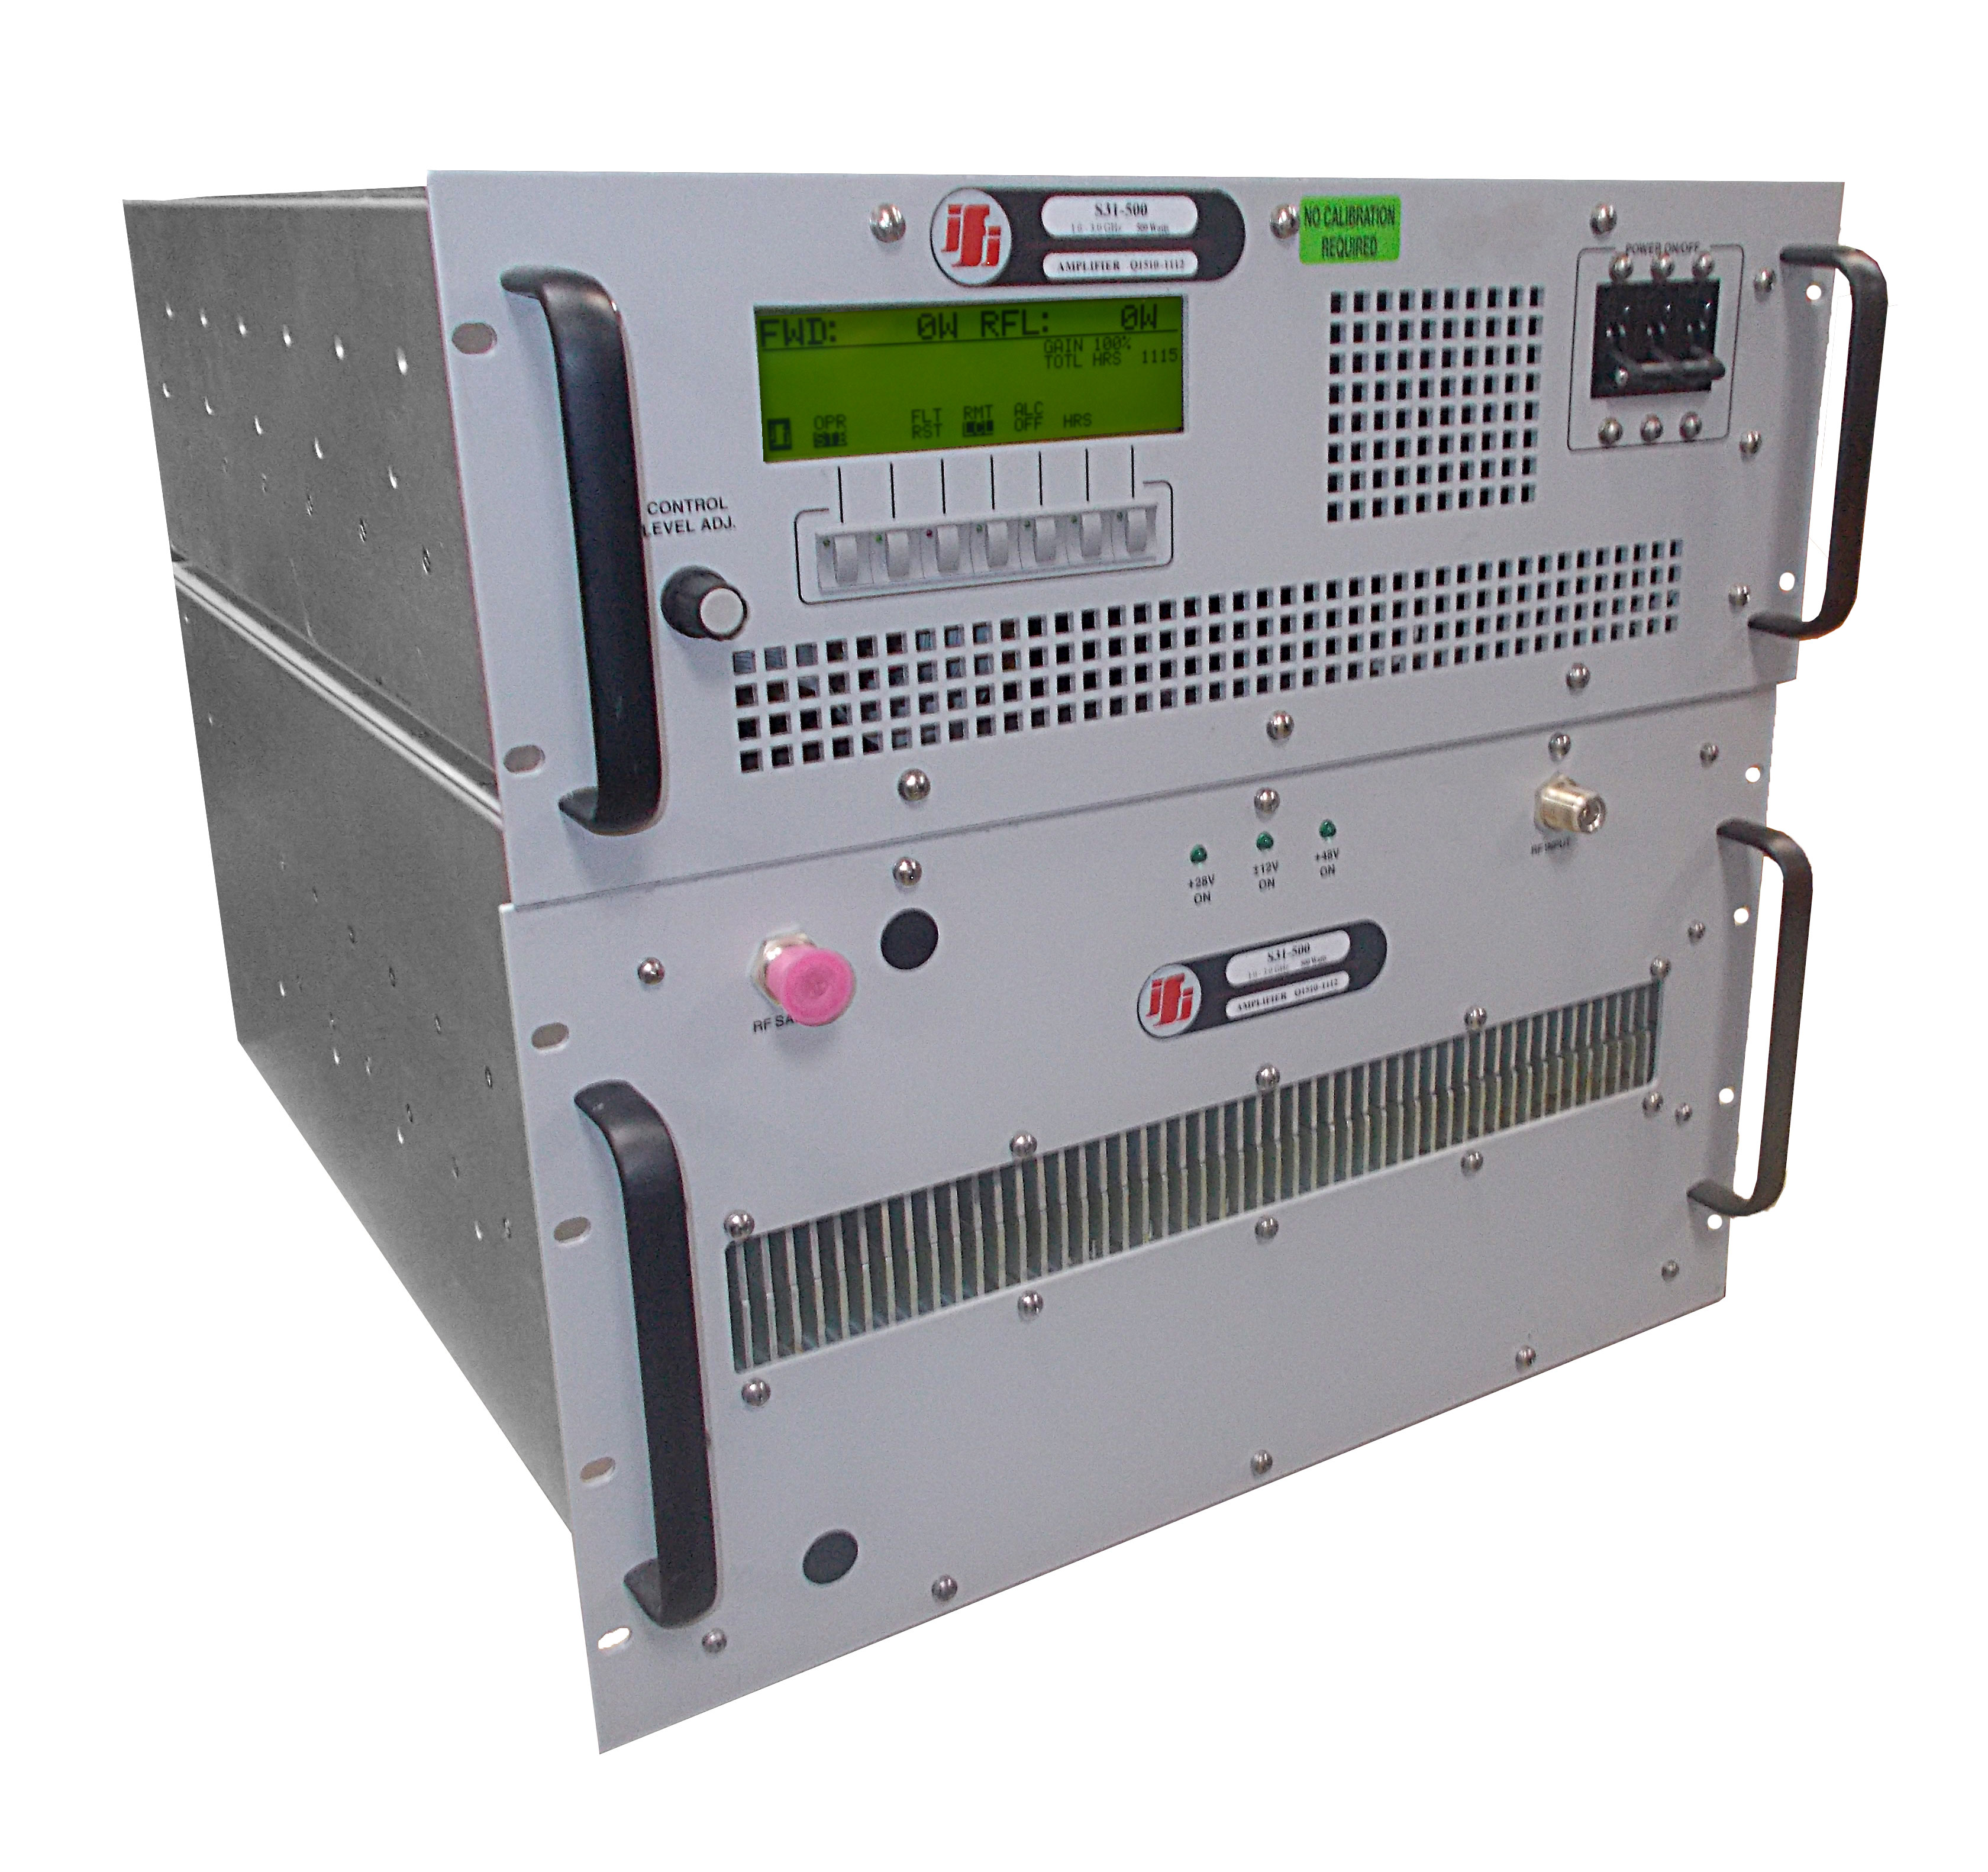 Rf Power Amplifiers Atec Rentals 80 Watt Amplifier Circuit Ifi S31 500 Solid State 800 Mhz 3 Ghz